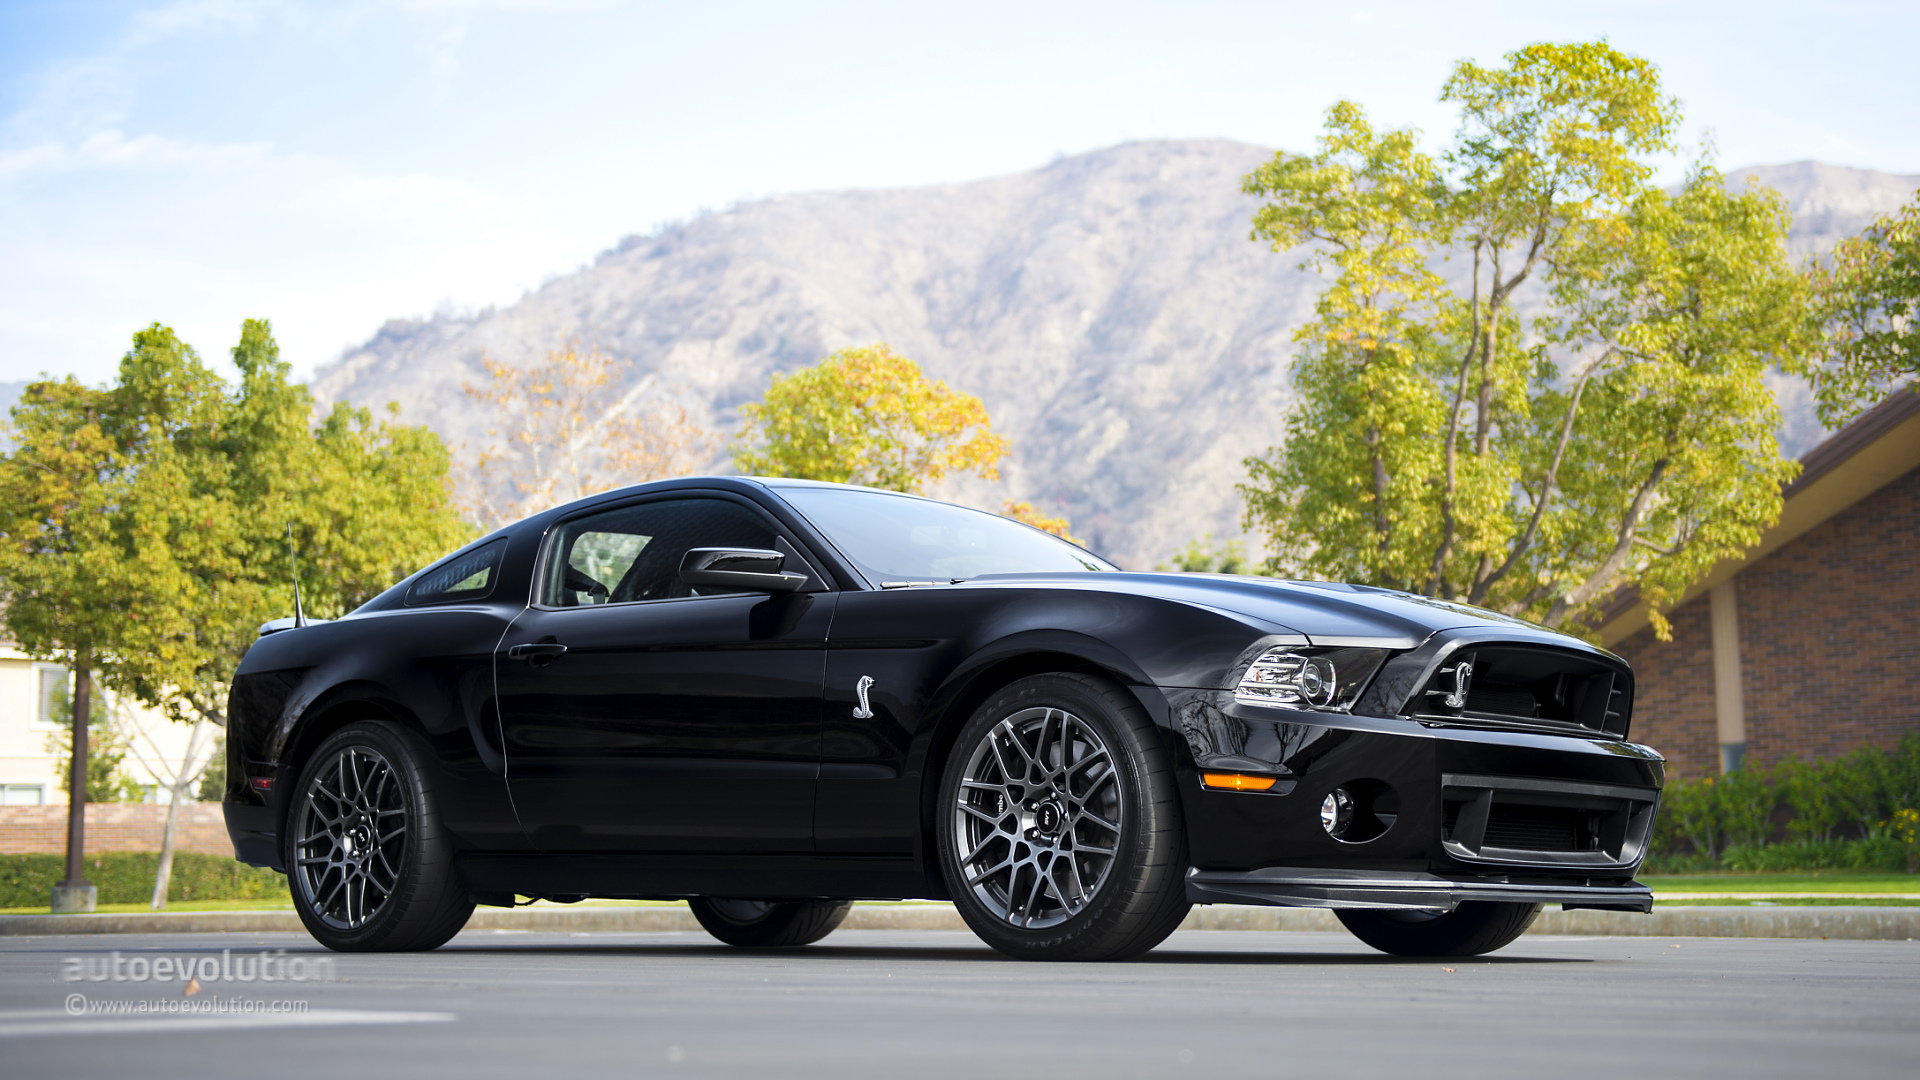 2014 ford mustang shelby gt500 review page 2 autoevolution. Cars Review. Best American Auto & Cars Review